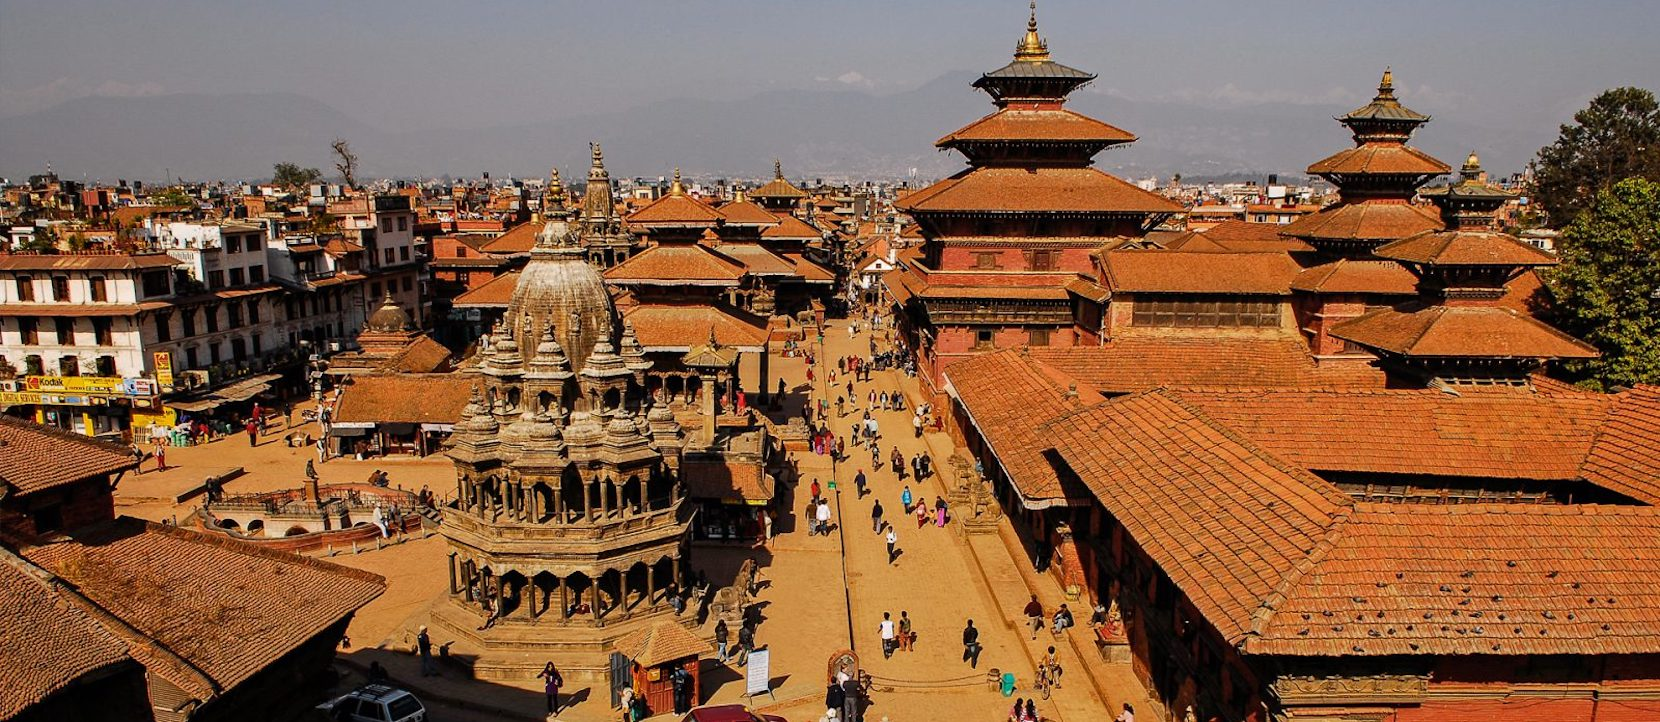 8 Day  Royal tour of Nepal ( Private tour for two ) THIS IS A COMPLETE TOUR OF NEPAL